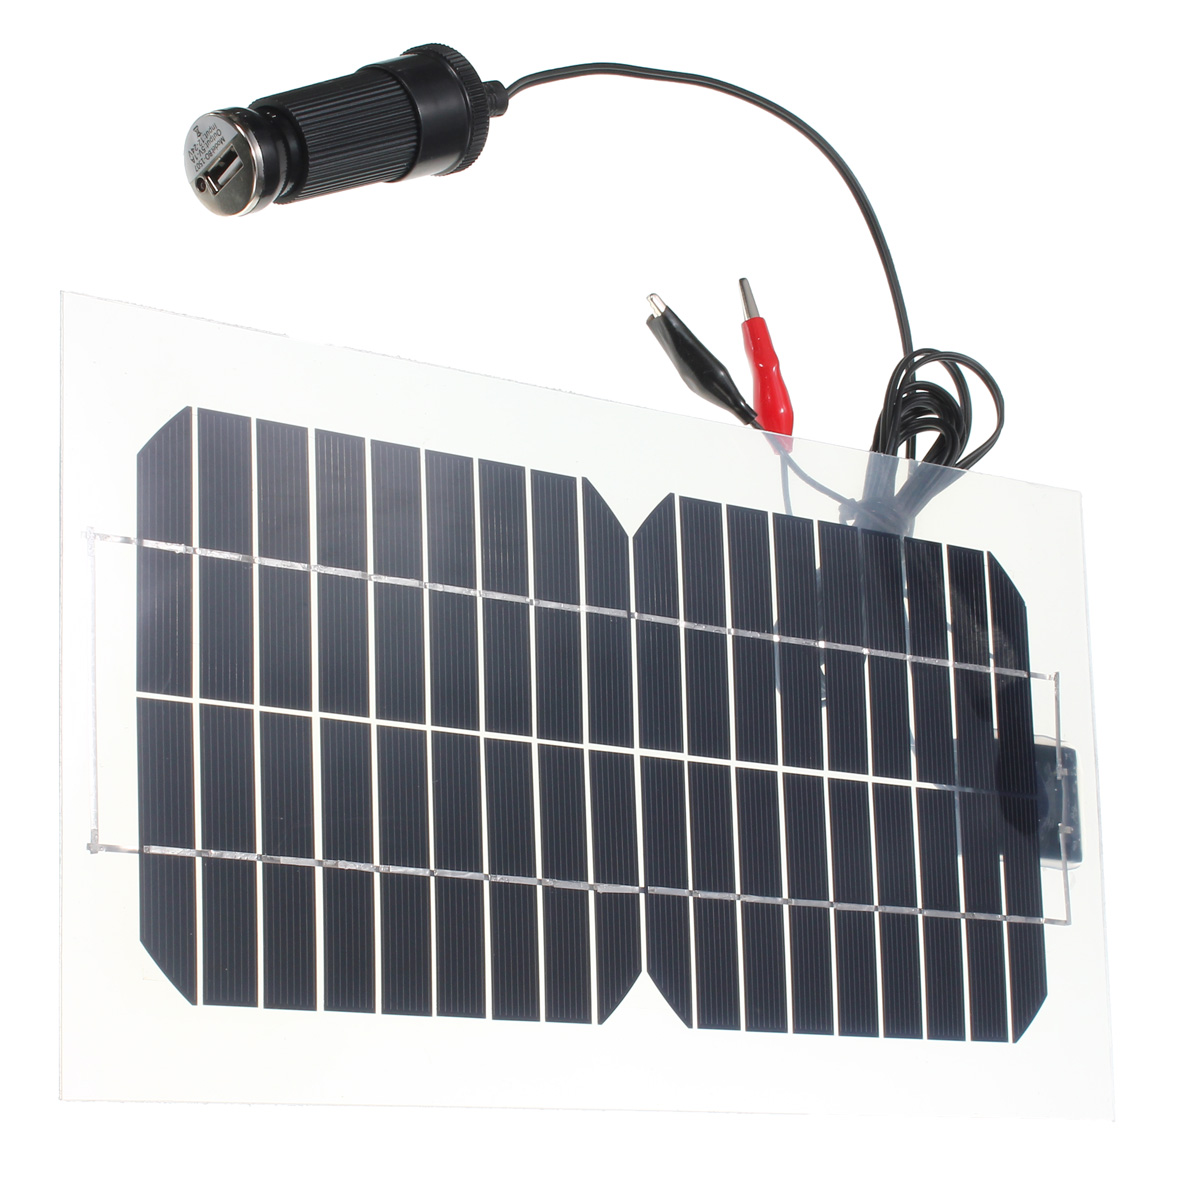 Mohoo 18v 5.5w Transparent Monocrystalline Solar Charger Solar Cell Panel With USB Solar Battery Charger by